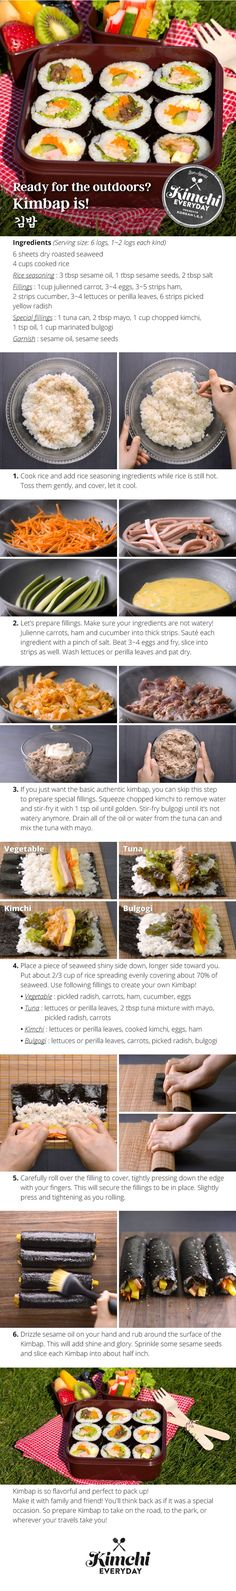 Hmart presents: How to make Kimbap 4 different ways